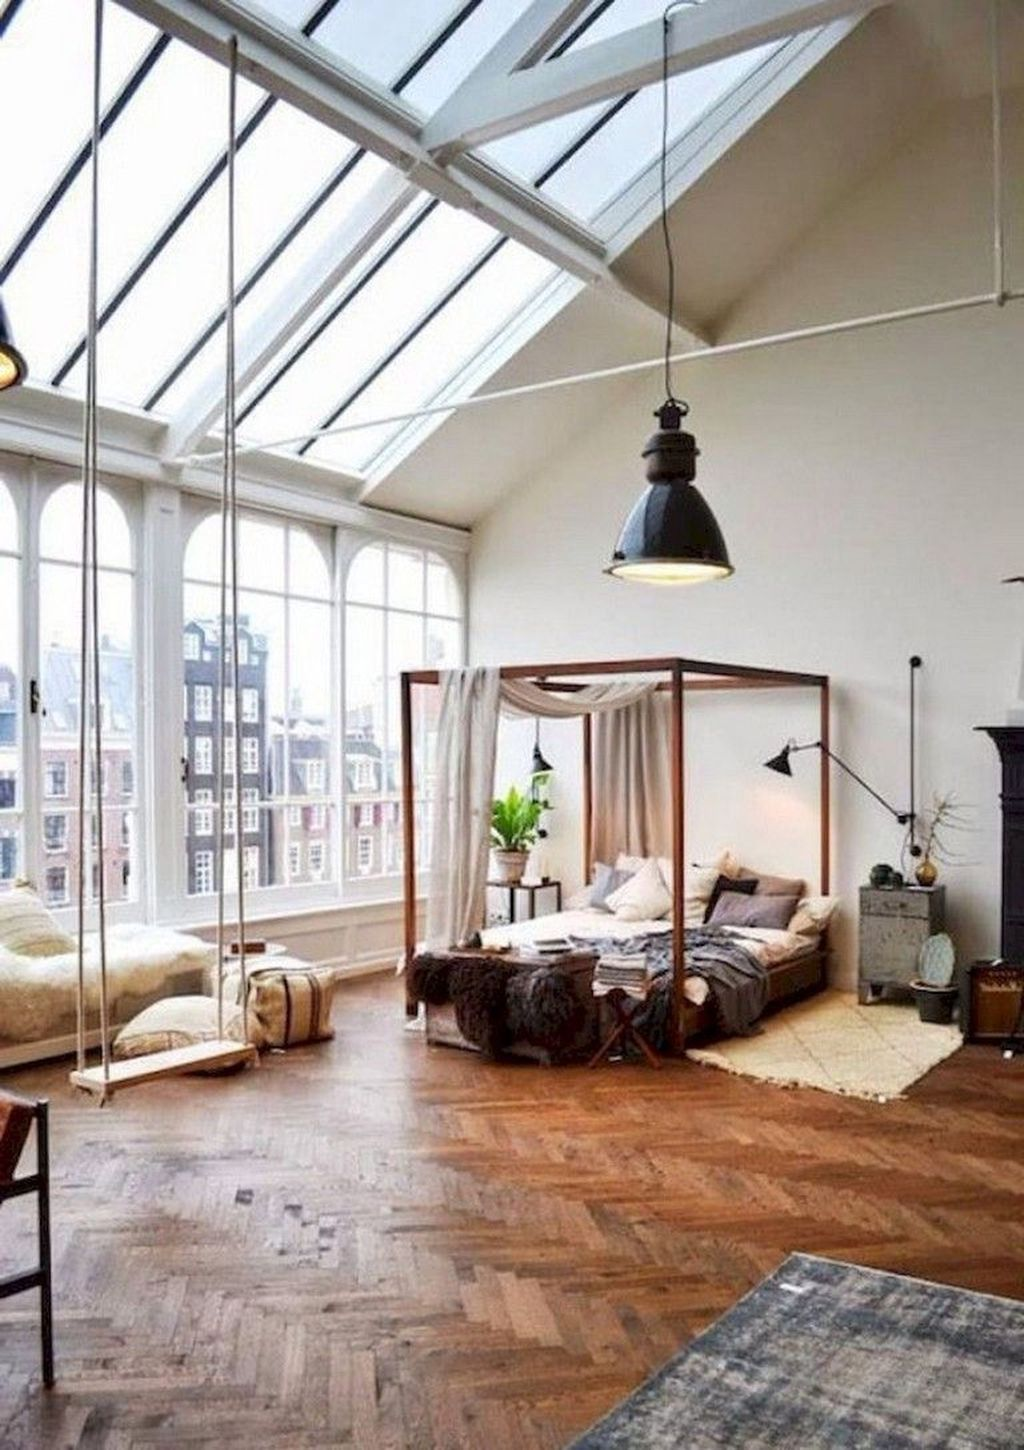 Awesome 35 Fascinating Loft Bedrooms Design Ideas Loft Apartment Decorating Stylish Loft Loft Apartment Designs